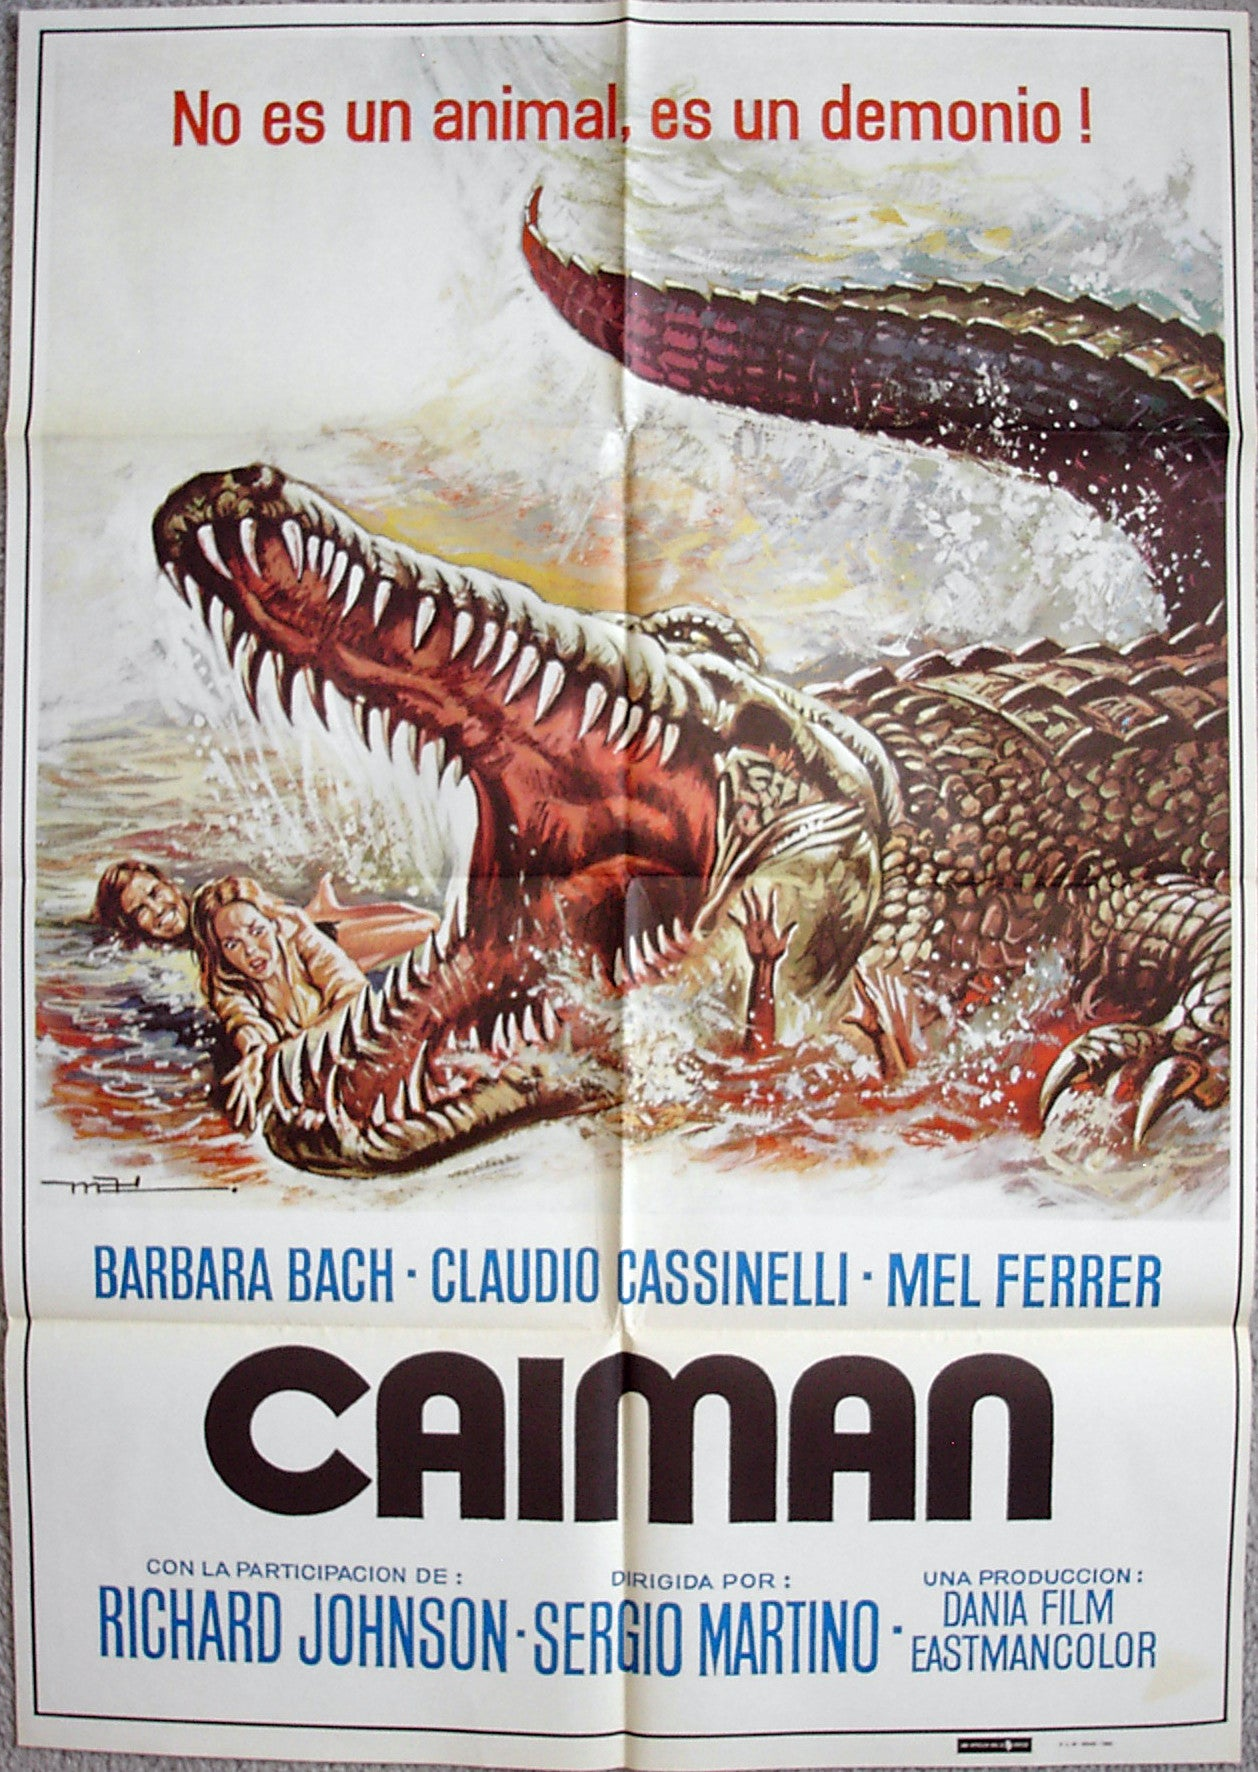 GREAT ALLIGATOR, THE - Spanish poster